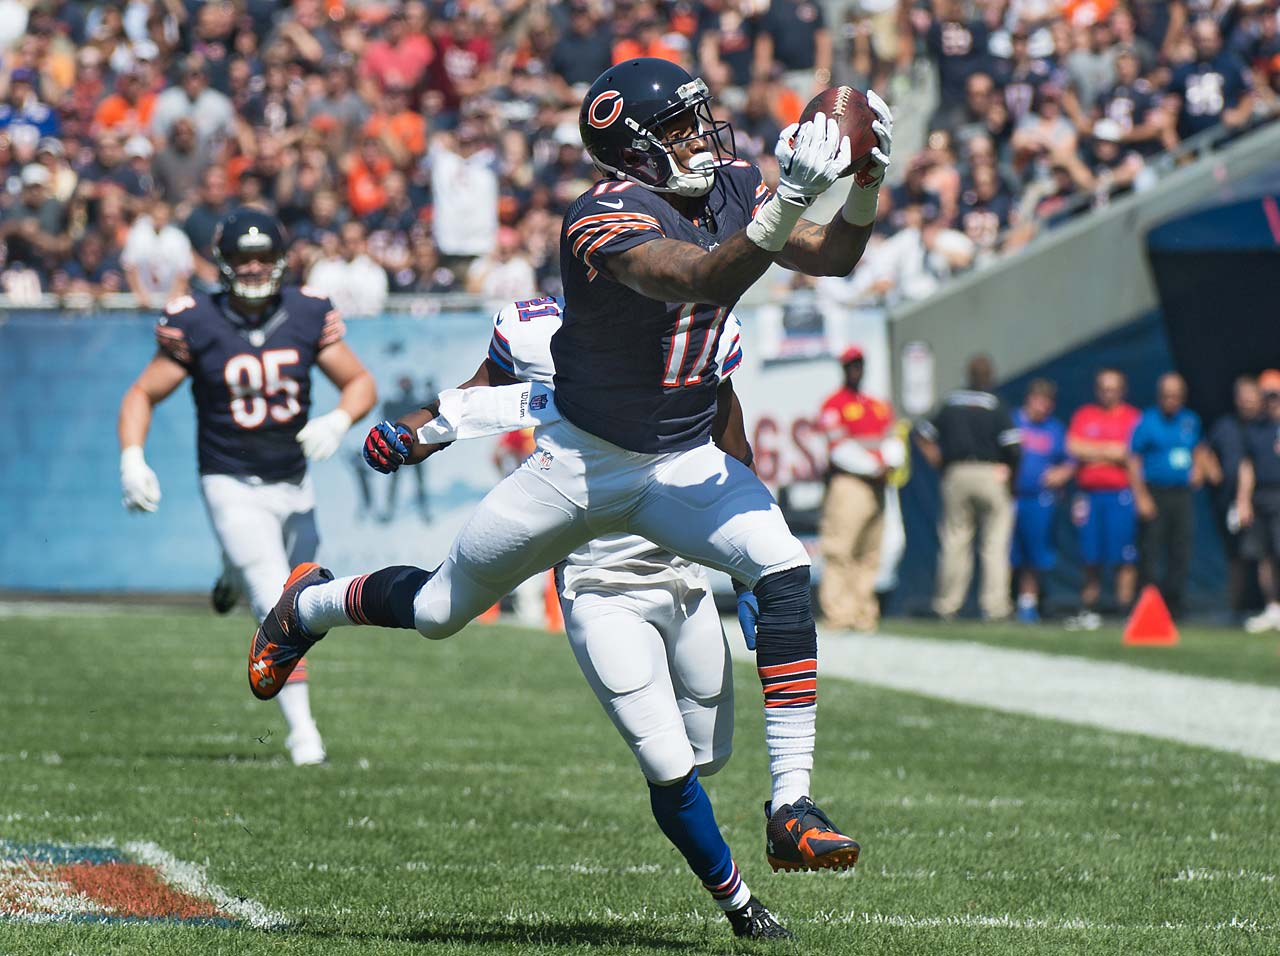 Alshon Jeffery didn't score against the Bills but did pull in five passes for 71 yards.